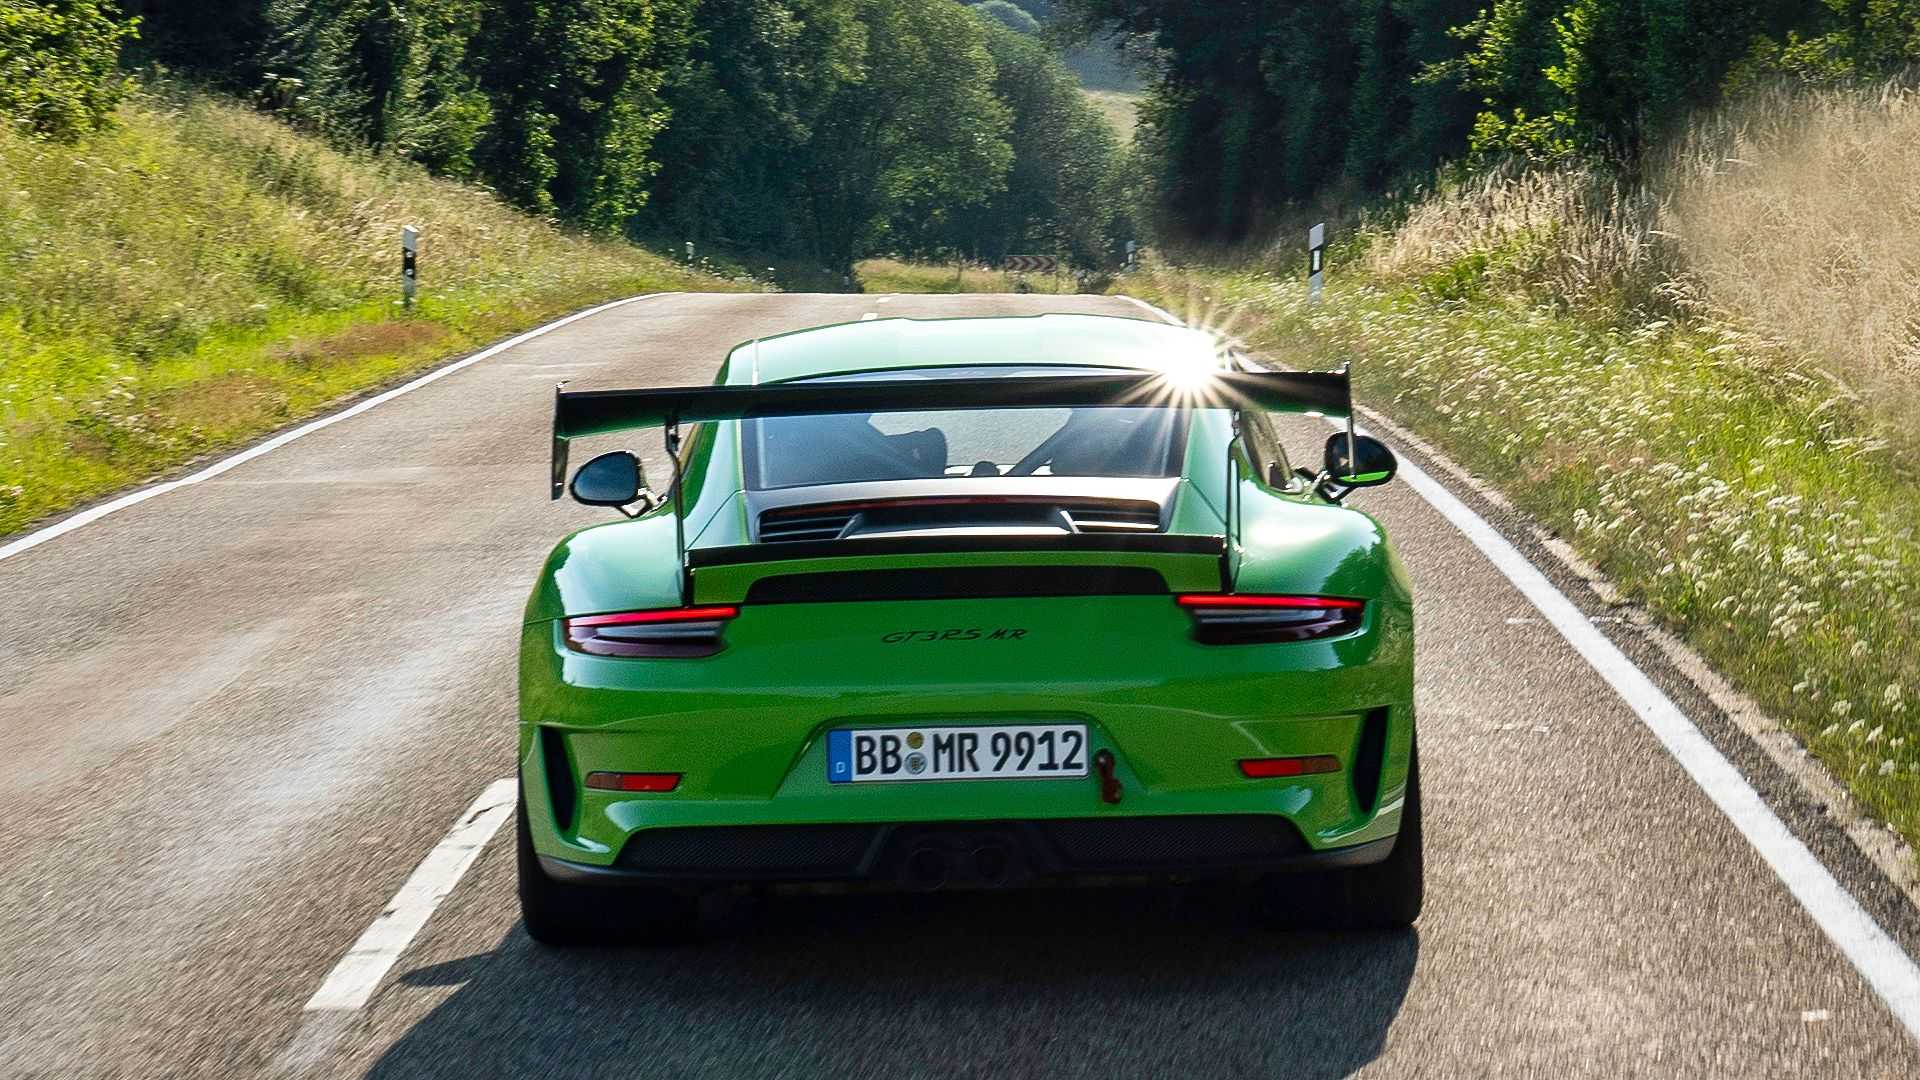 Porsche-911-GT3-RS-by-Manthey-Racing-4